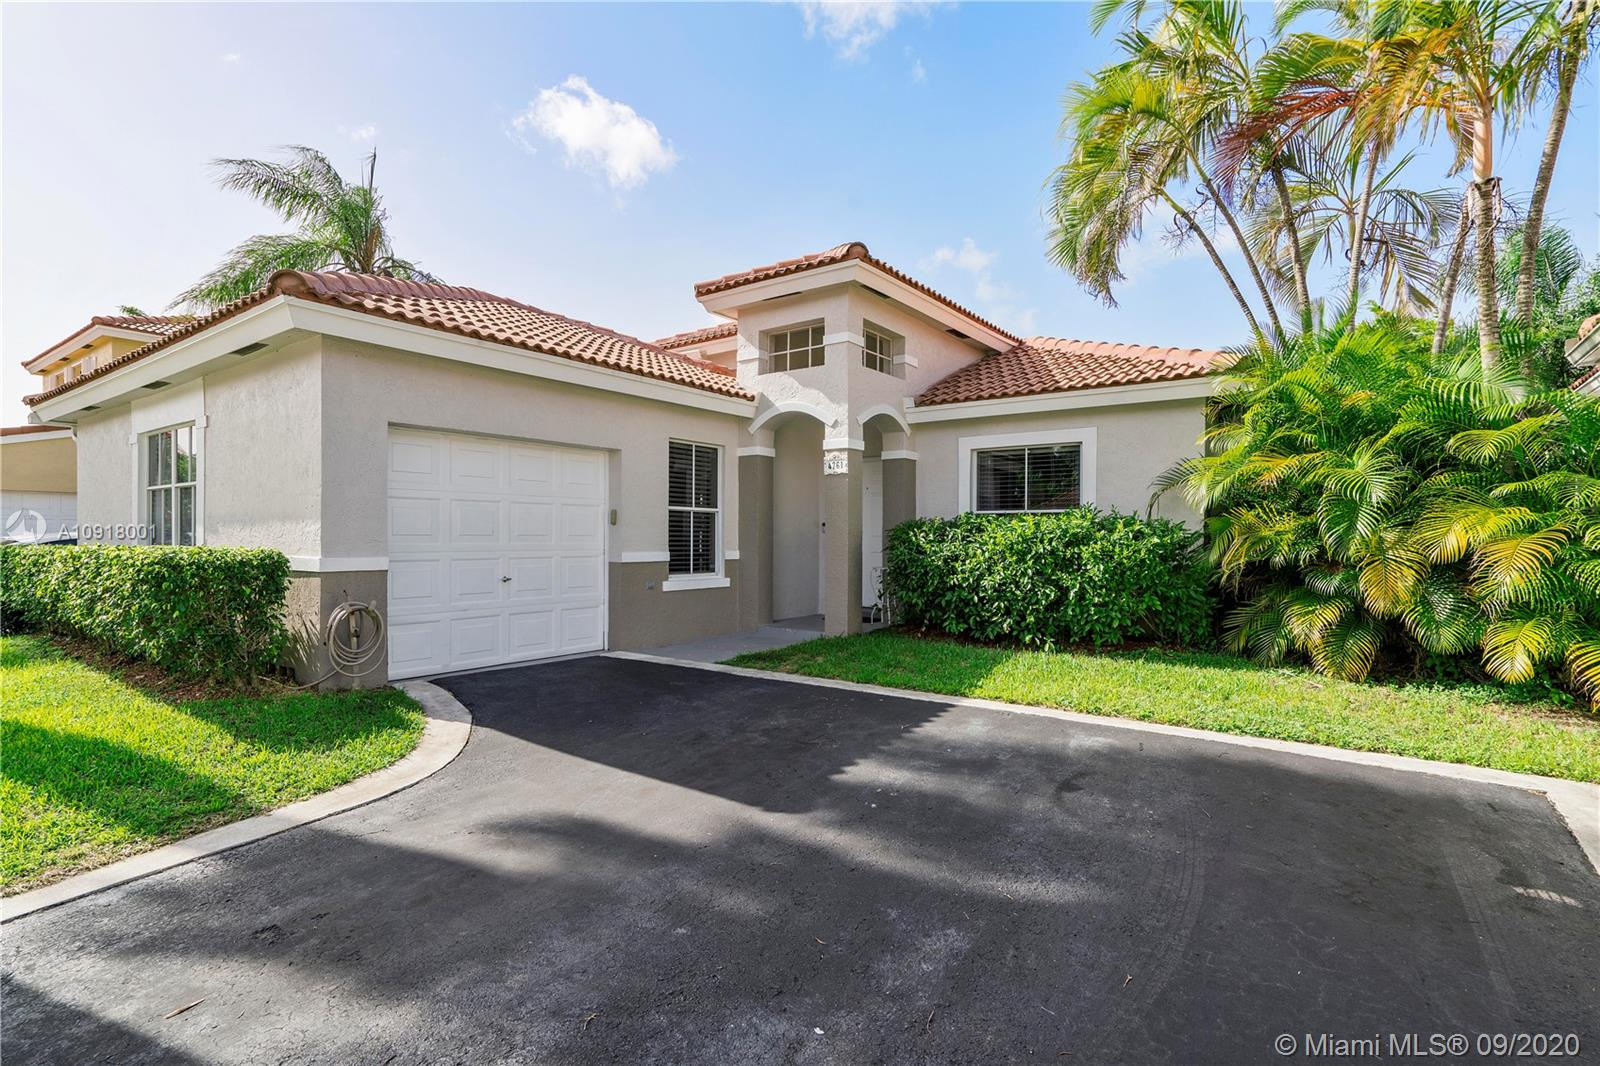 Beautifully Upgraded 3 Bed, 2 Bath Home W/1 Car Garage On An Oversized Fenced Lot In Coco Palms Of Coconut Creek. Open Custom Kitchen Features Granite Countertops, Tile Backsplash, Newer Appliances, Wood Cabinets, Recessed Lighting, & Pantry. This Home Has Volume Ceilings, Living Room, Large Dining Area, Crown Molding & Wood-like Tile Flooring Throughout. Large Master Suite With Tray Ceiling & Natural Lighting. Master Bath Has Large Custom Wood Vanity, Granite Countertop, Large Tiled Shower W/Stone Floor, Recessed Lighting, & Walk-In Closet. Upgraded Hall Bath Has Wood Vanity, Granite Countertop, Custom Mirror, & Rustic Tile Shower. Front Loading Washer & Dryer. Upgraded Baseboards. Large Private Landscaped Fenced Yard, Open Patio With Pavers & Room For Pool. Low HOA Only $66. A True GEM!